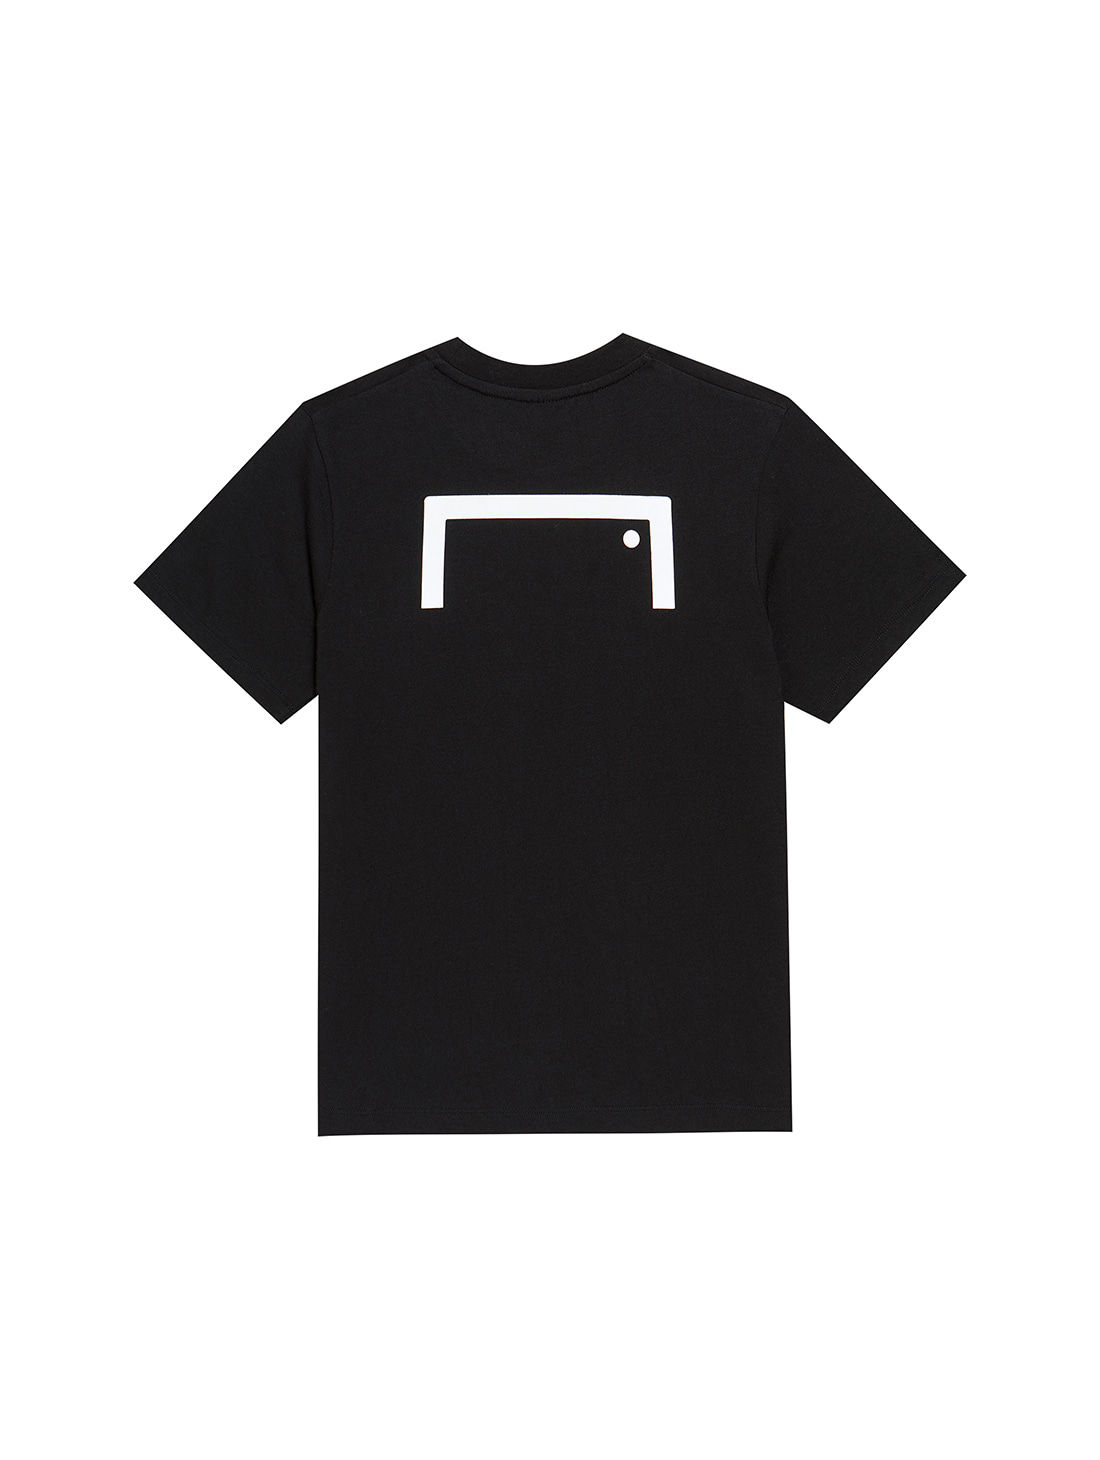 (KIDS) TEXT LOGO TEE - BLACK